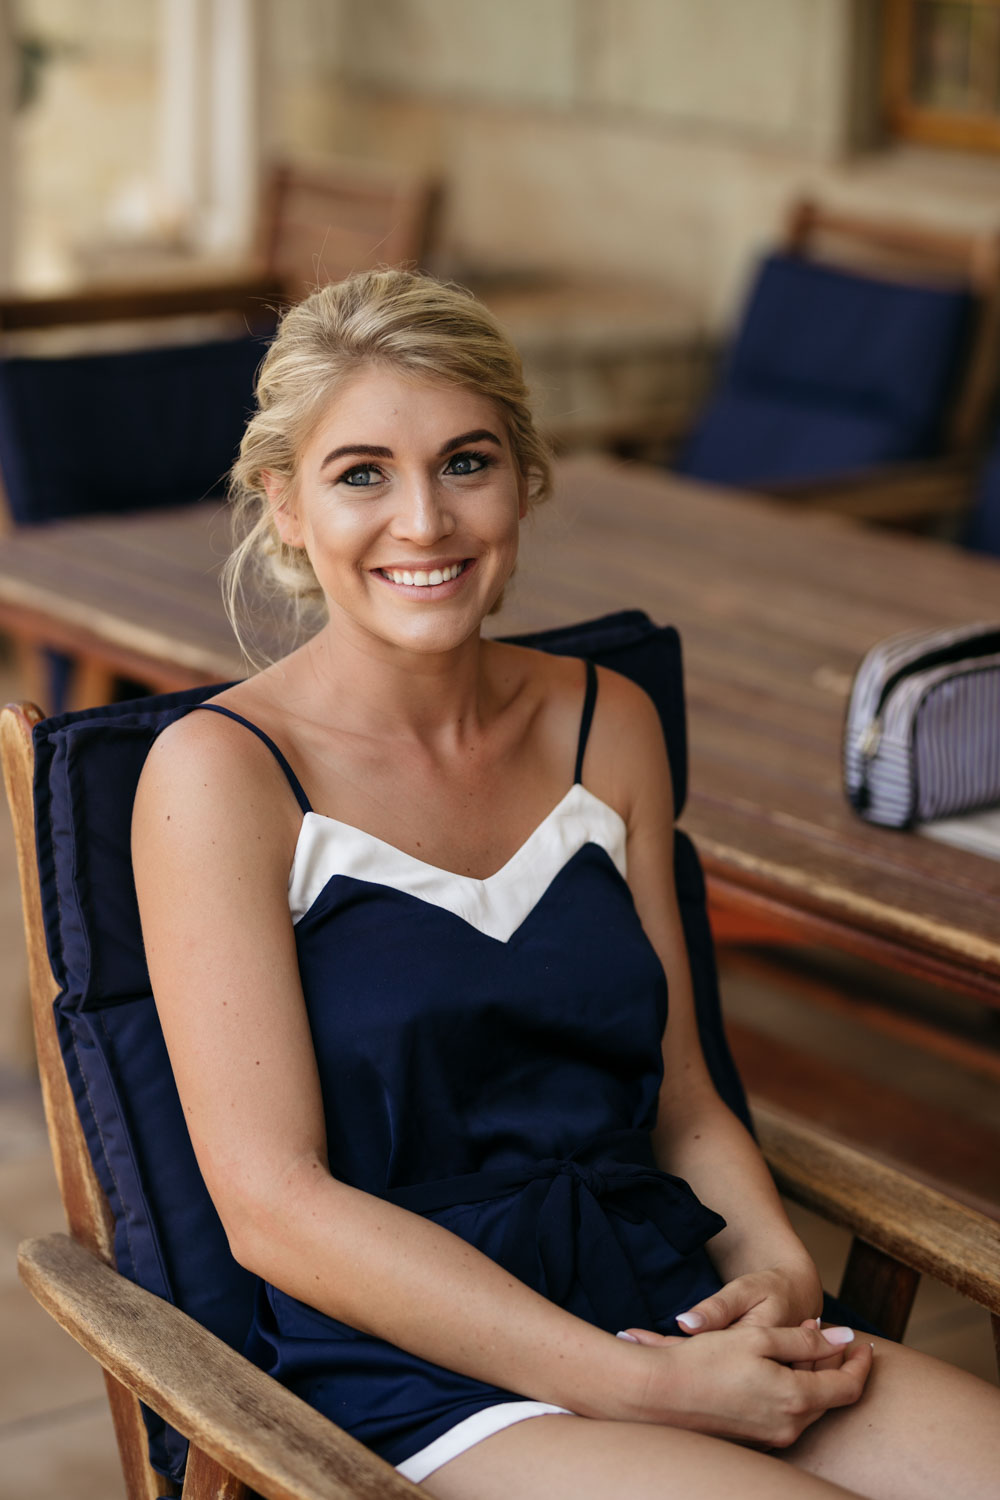 Blonde Bride Wearing Cute Blue And White Playsuit For Getting Ready Photographs